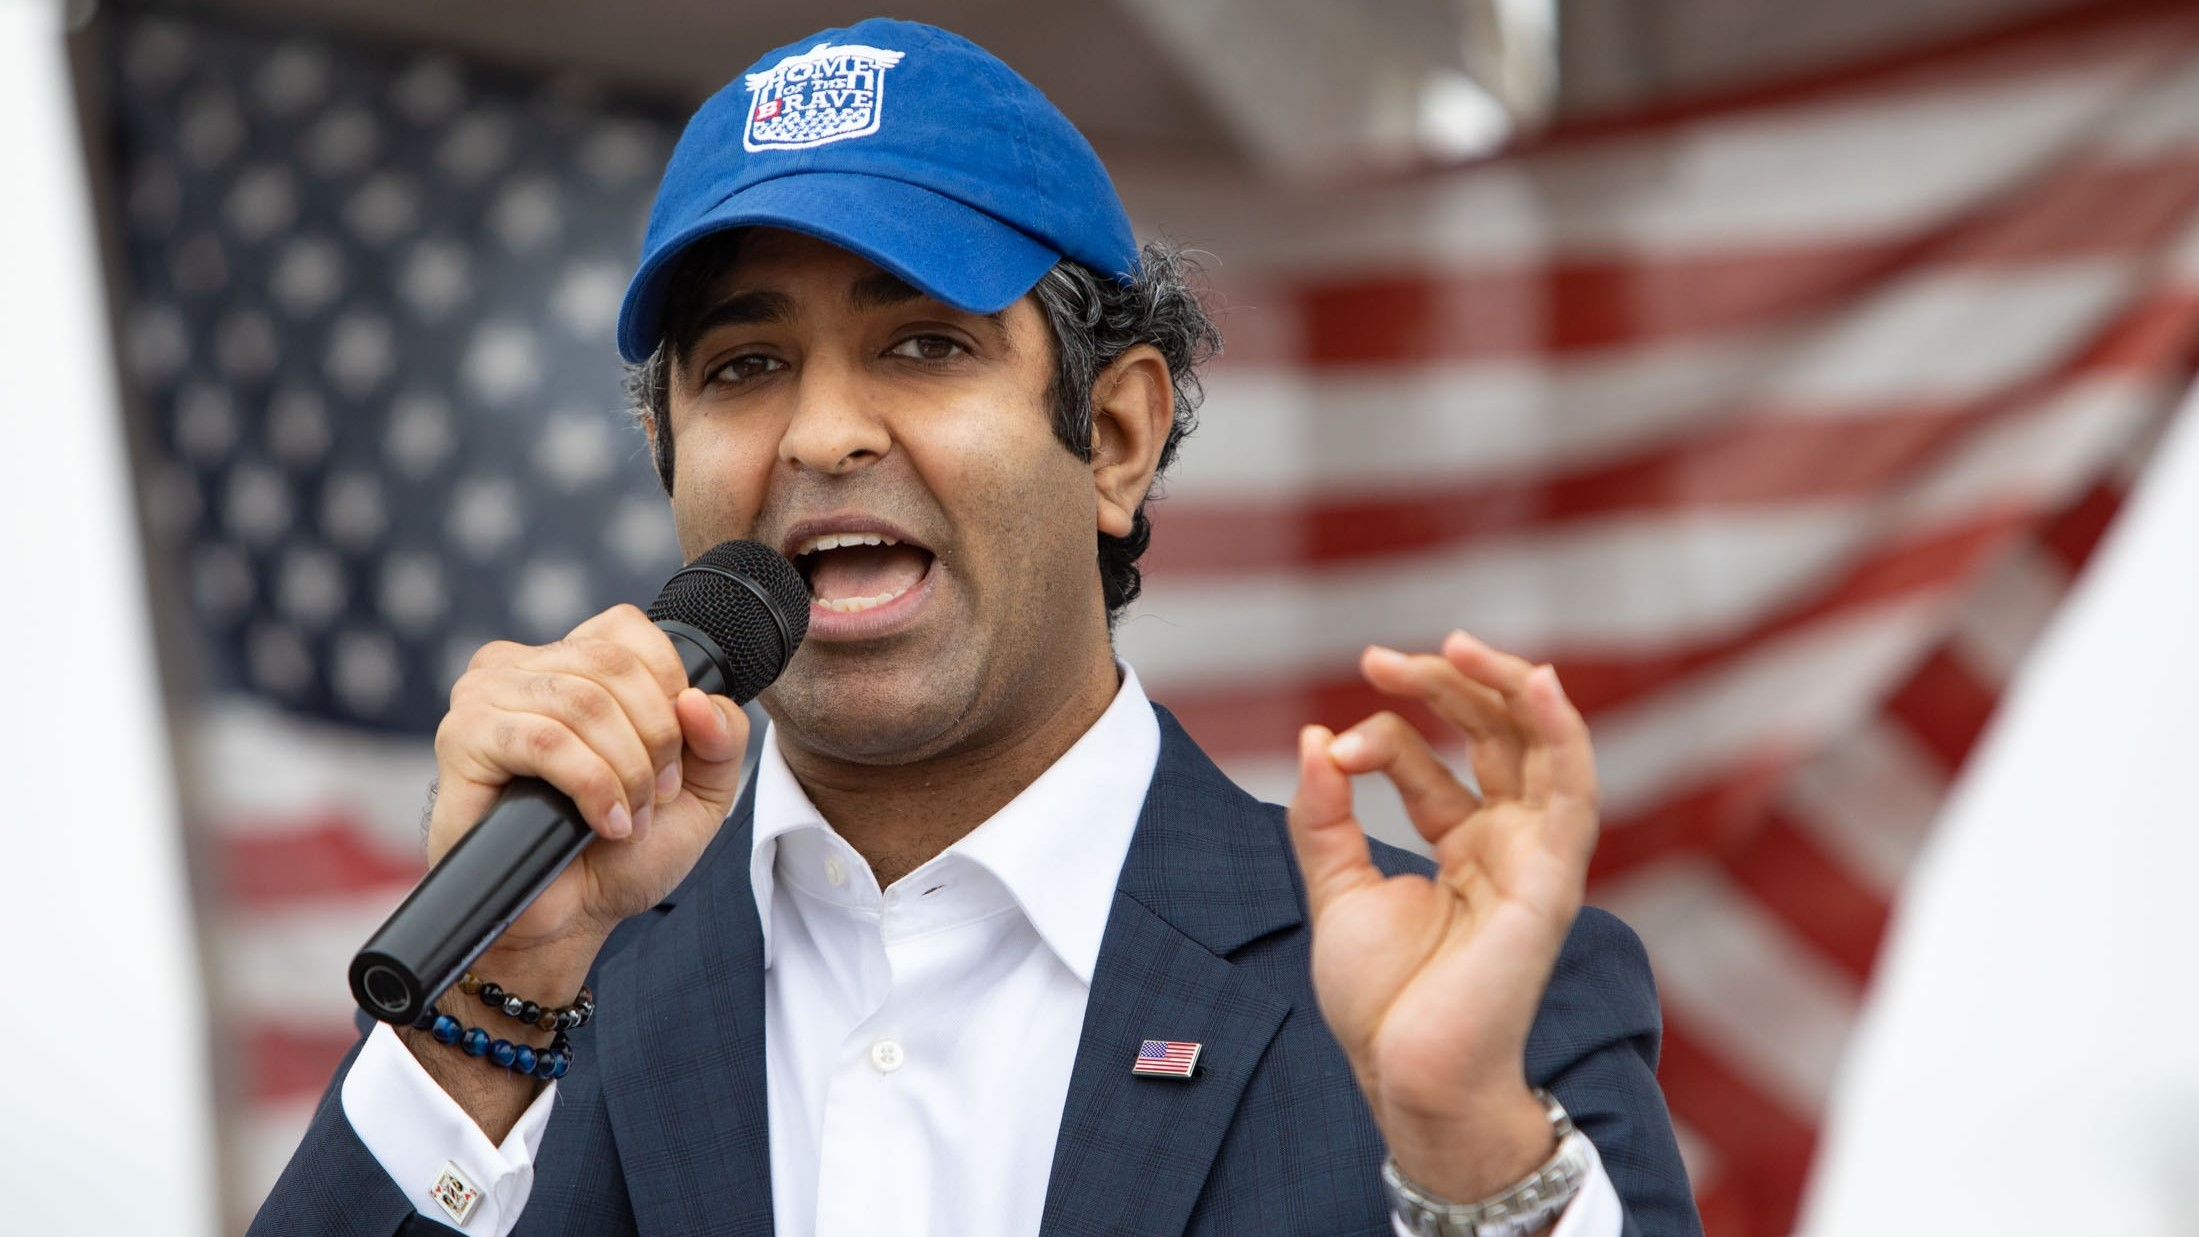 Hirsh Singh Calls for Opening NJ and Exposes Democrat Infiltration of GOP